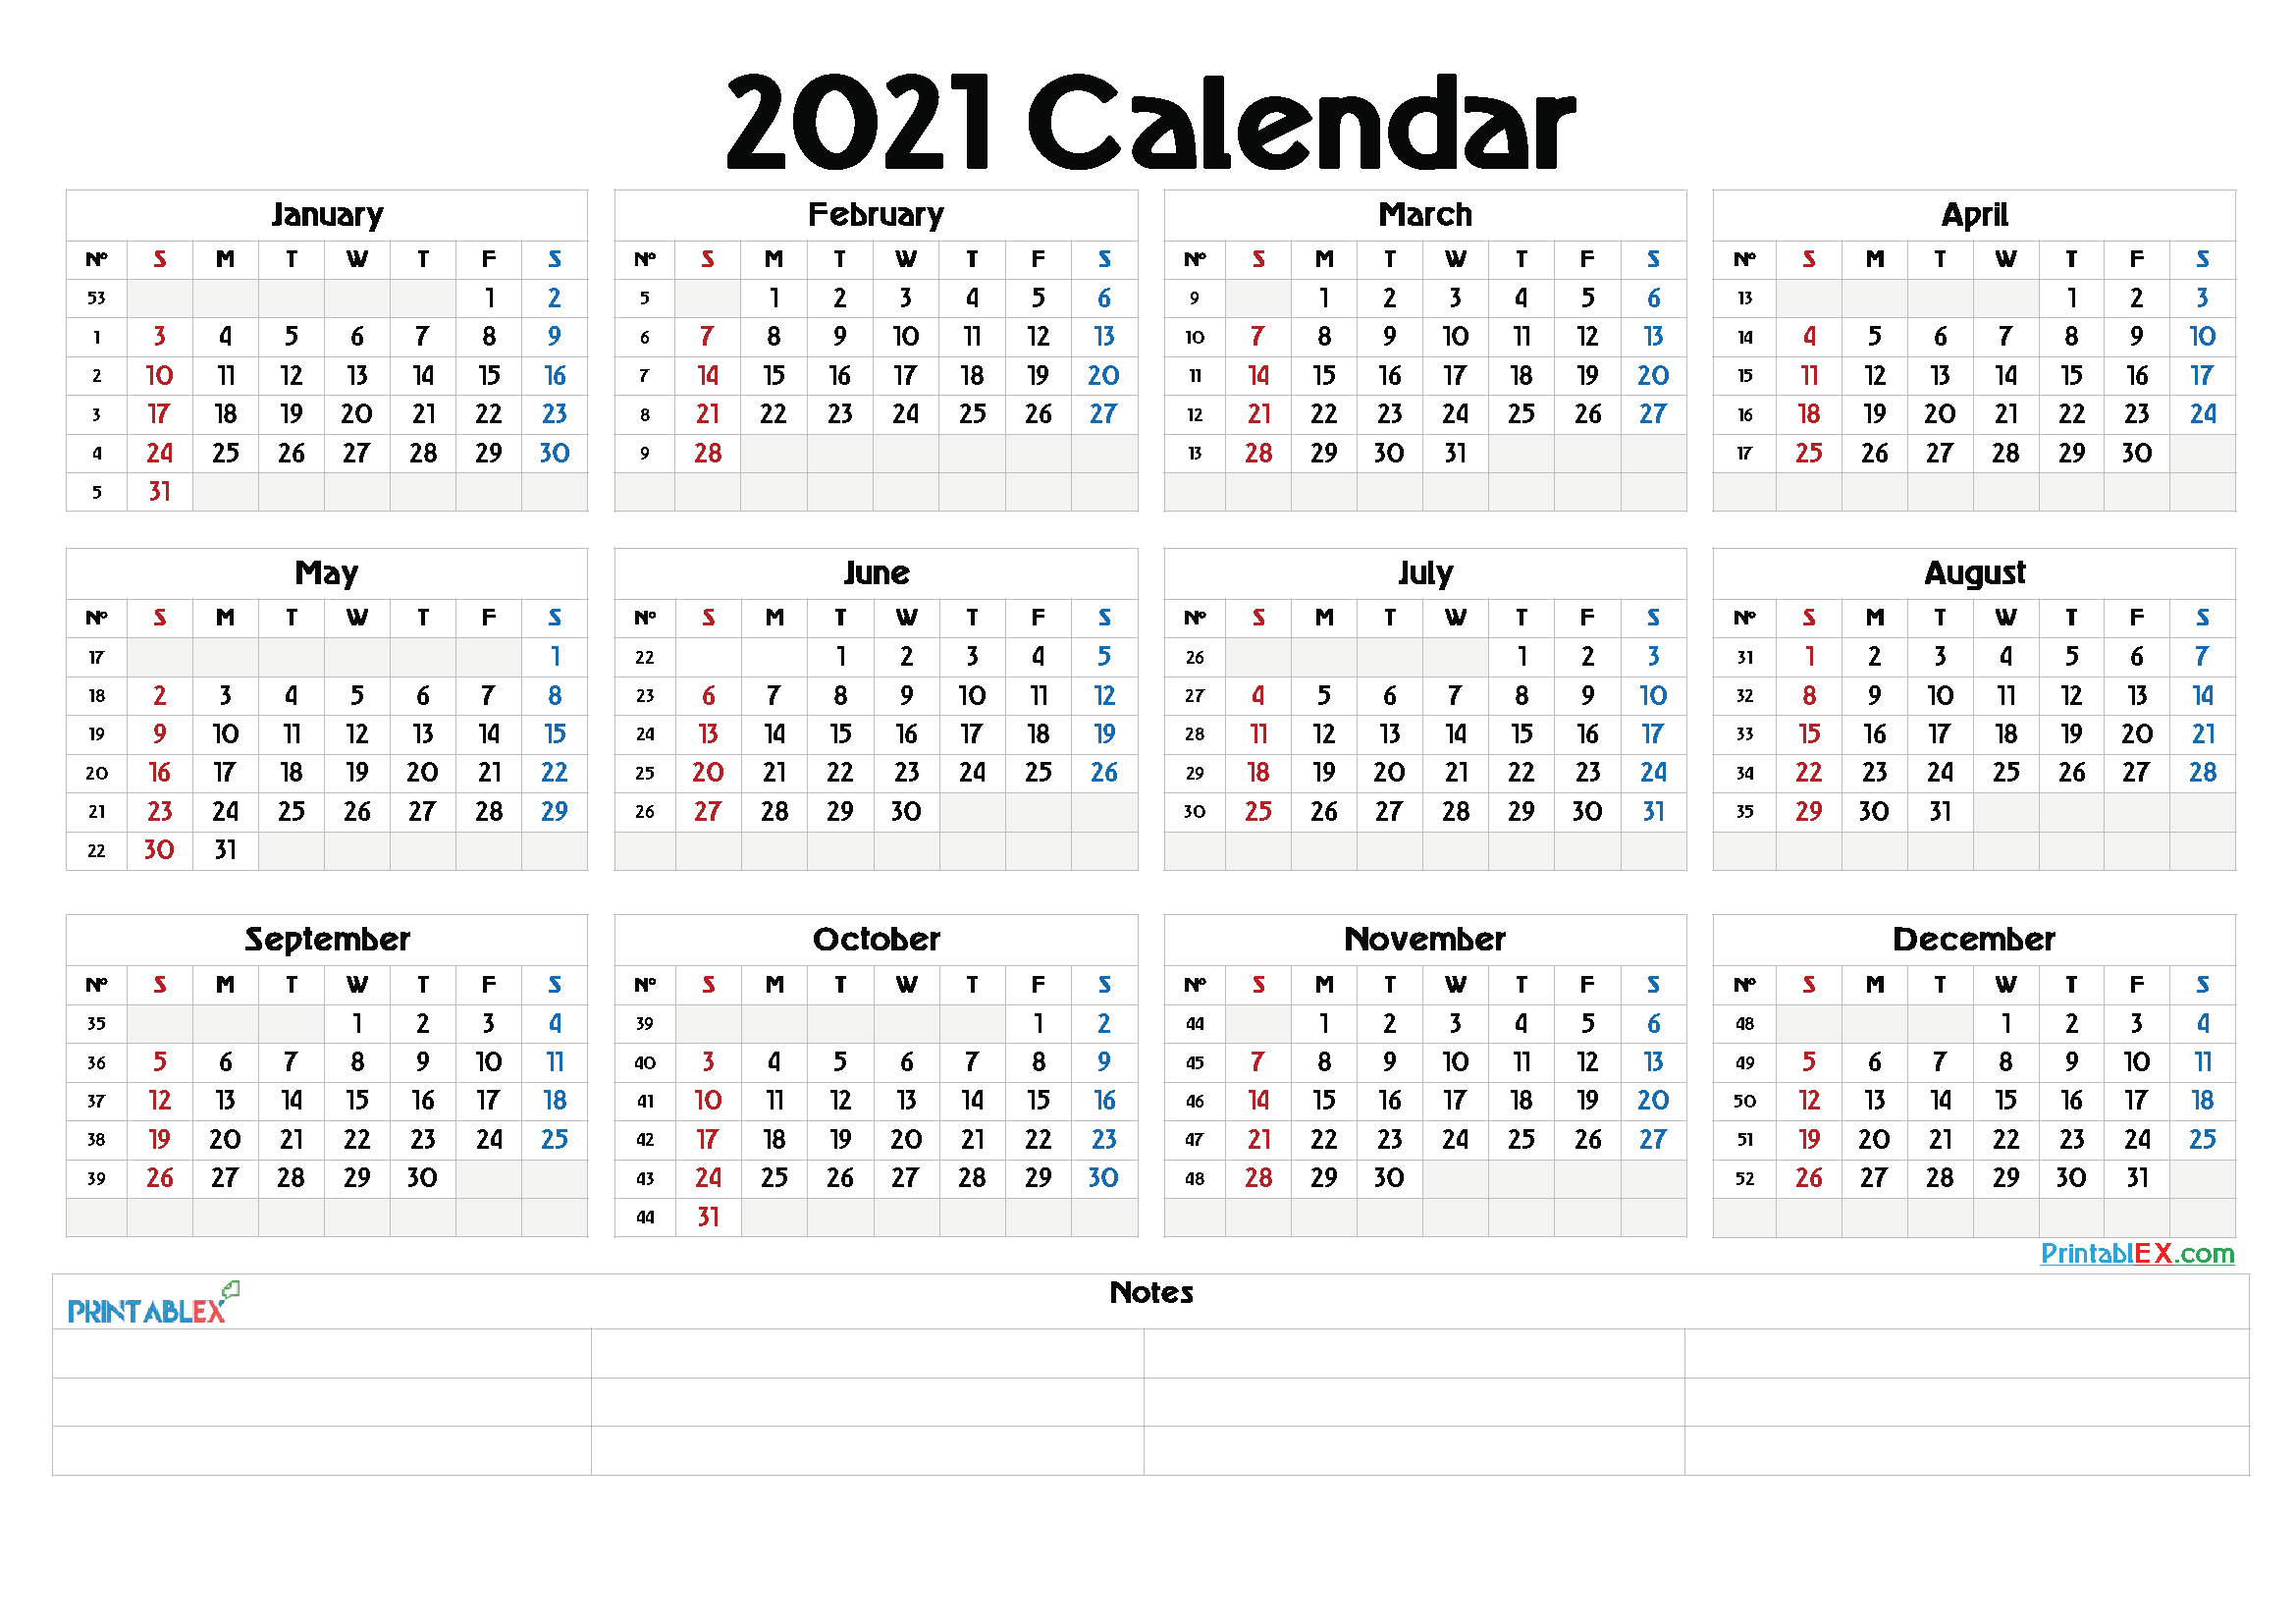 Printable blank monthly calendar for 2021 available with large square spaces for each day of the month. Whole Year Calendar 2021   Printable Calendars 2021